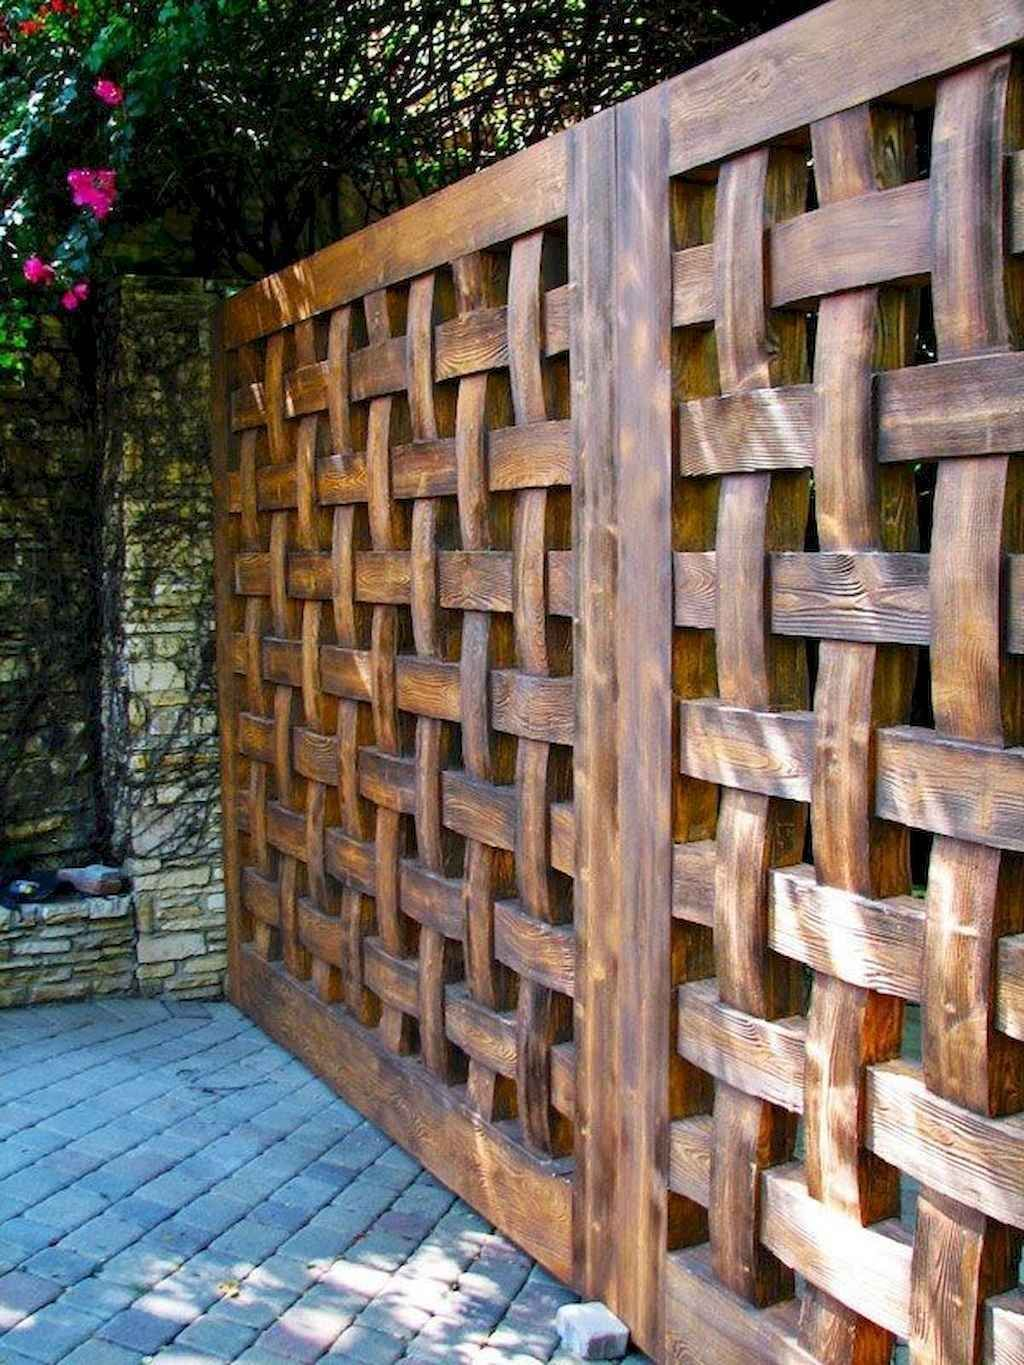 01 easy creative privacy fence design ideas in 2020 on inexpensive way to build a wood privacy fence diy guide for 2020 id=32899